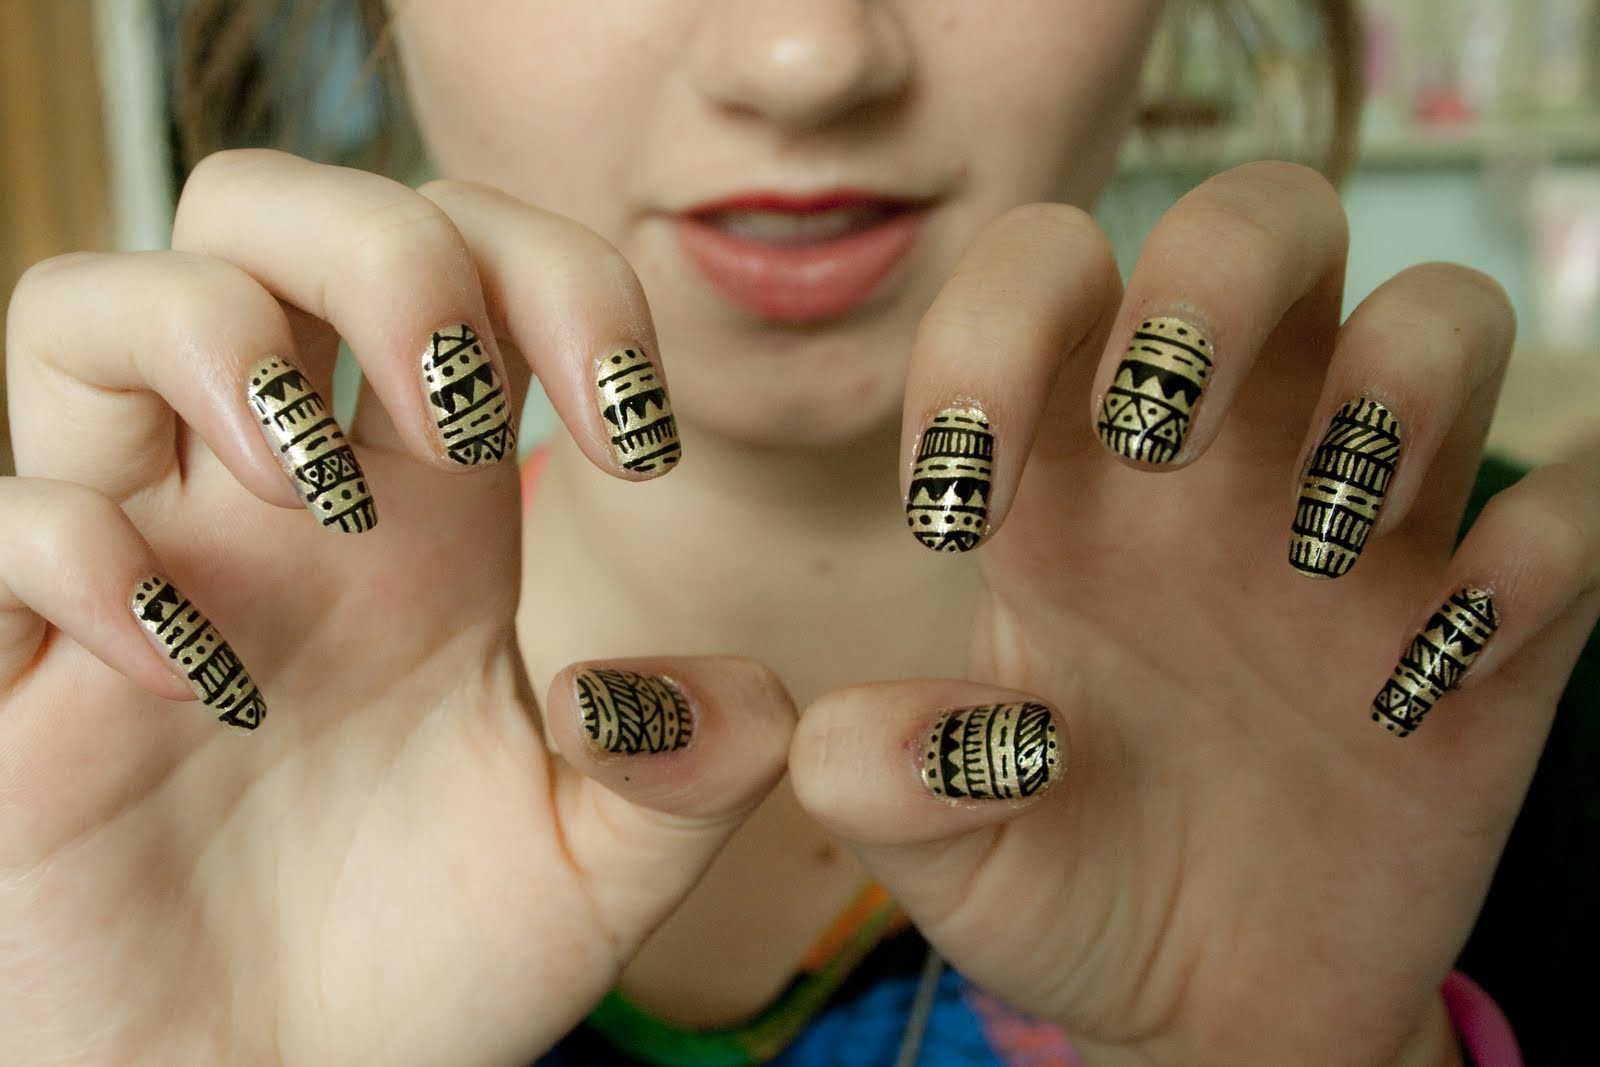 The girl with Black and Gold Aztec Nail Design.